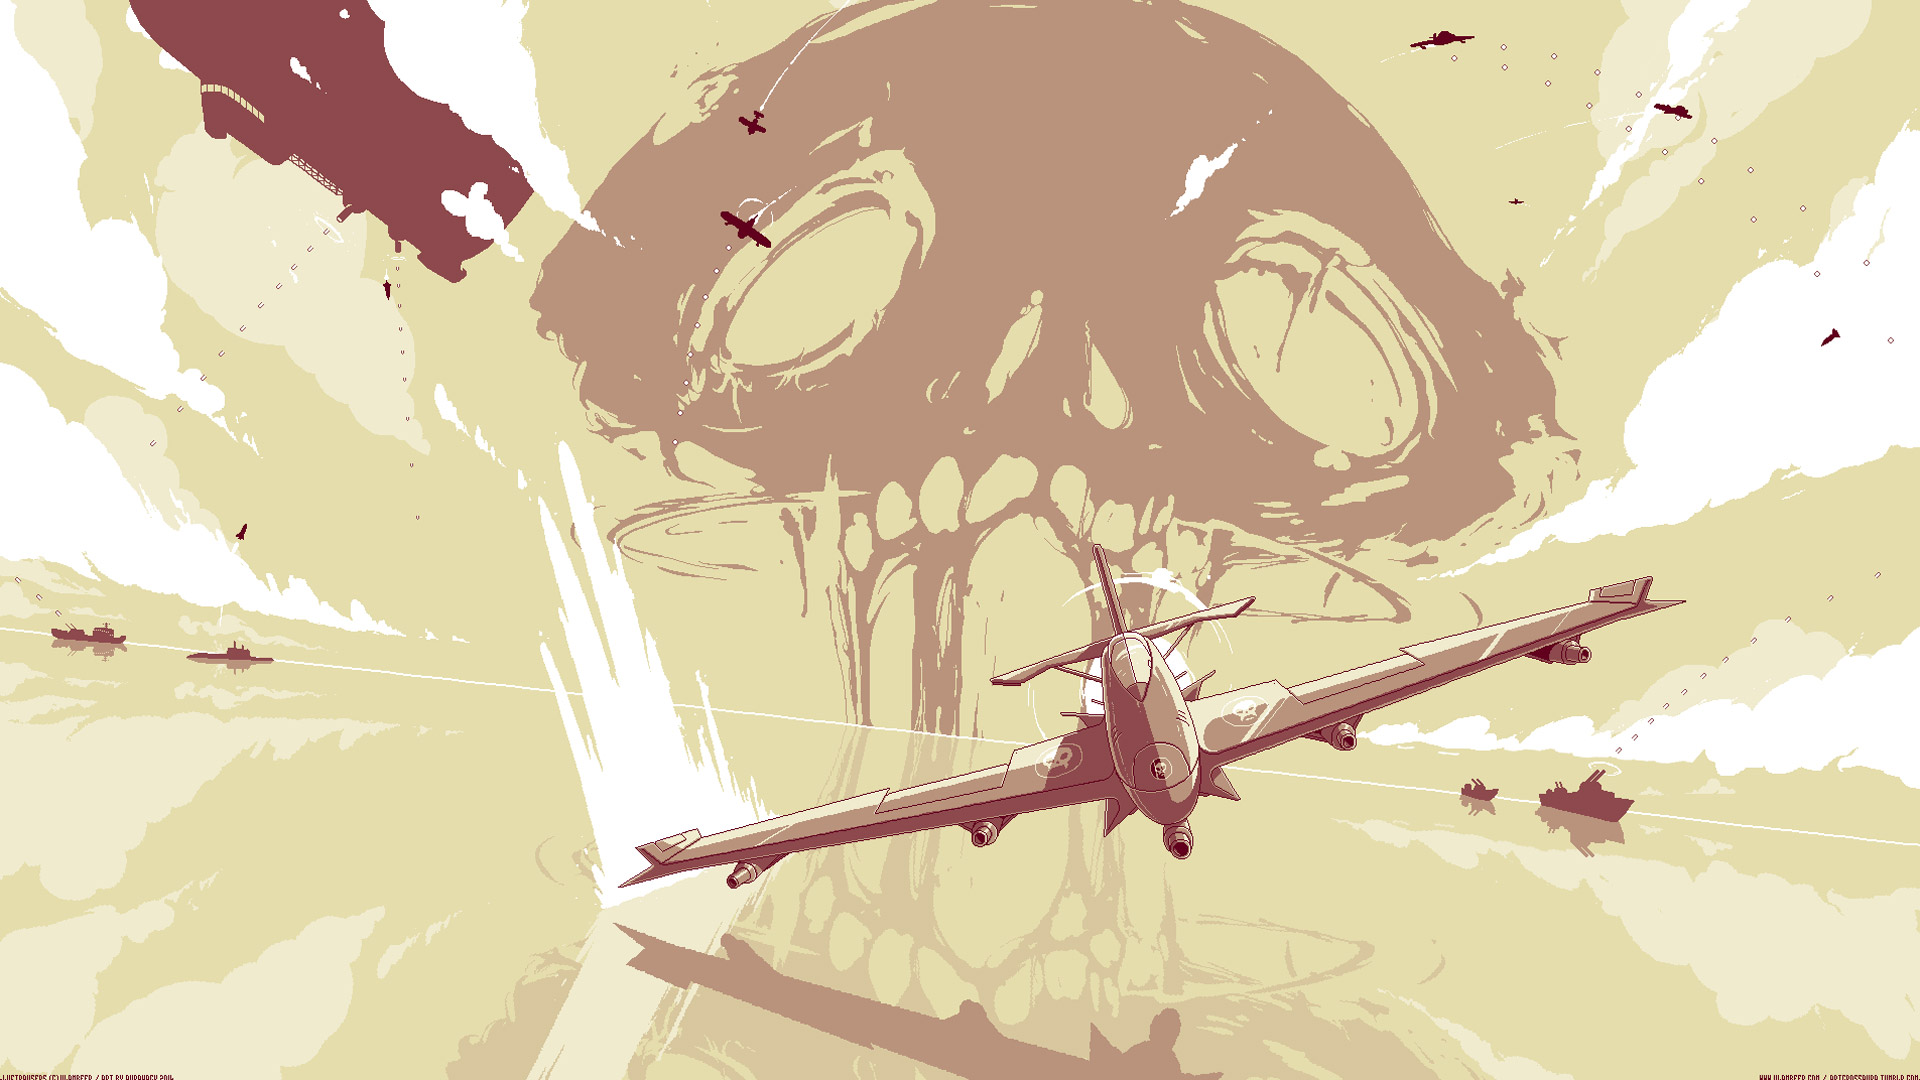 Free Luftrausers Wallpaper in 1920x1080